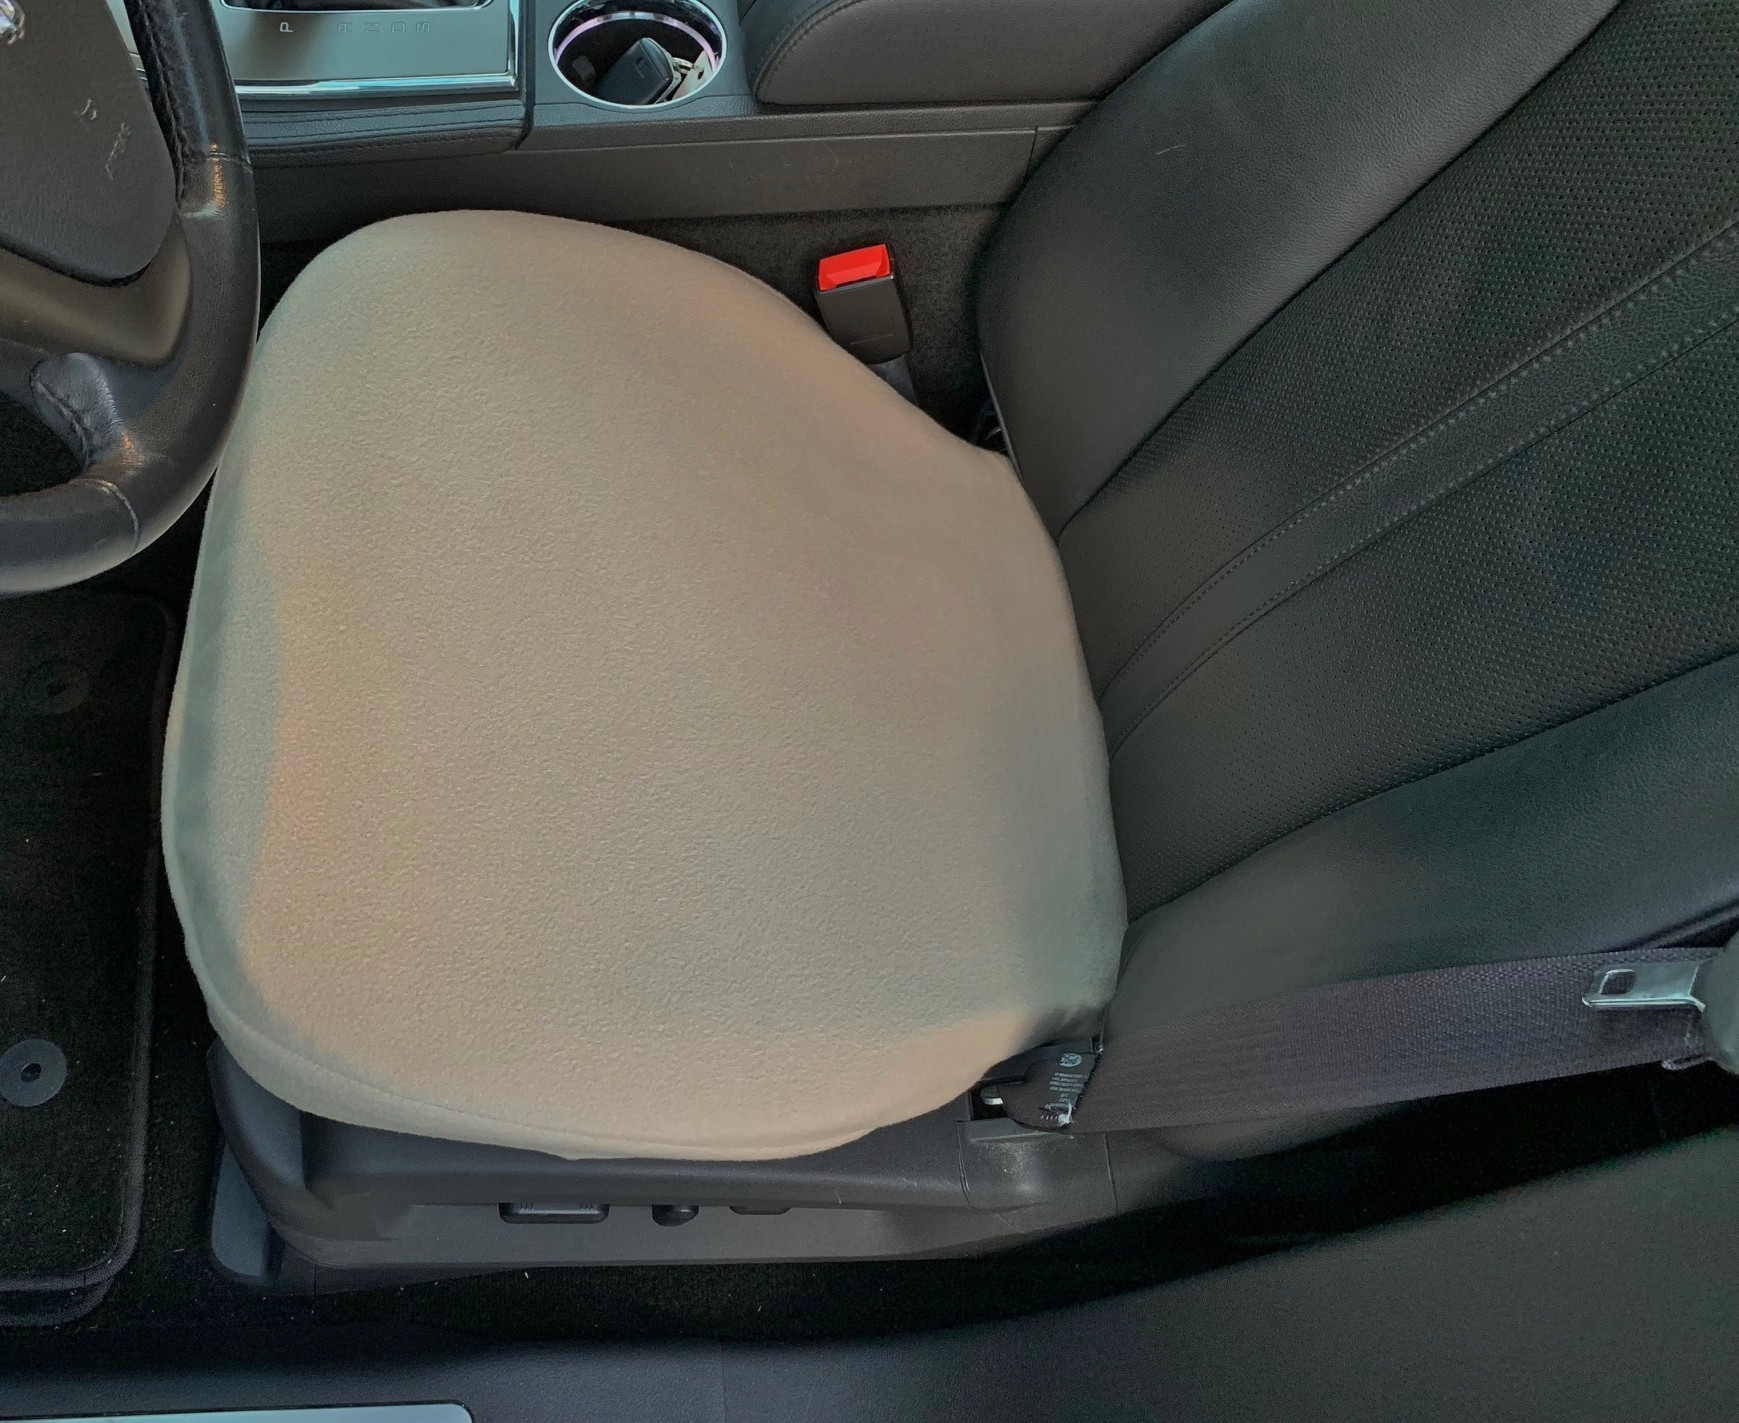 Fleece Bottom Seat Cover for Ford Fusion 2010-19 (SINGLE)